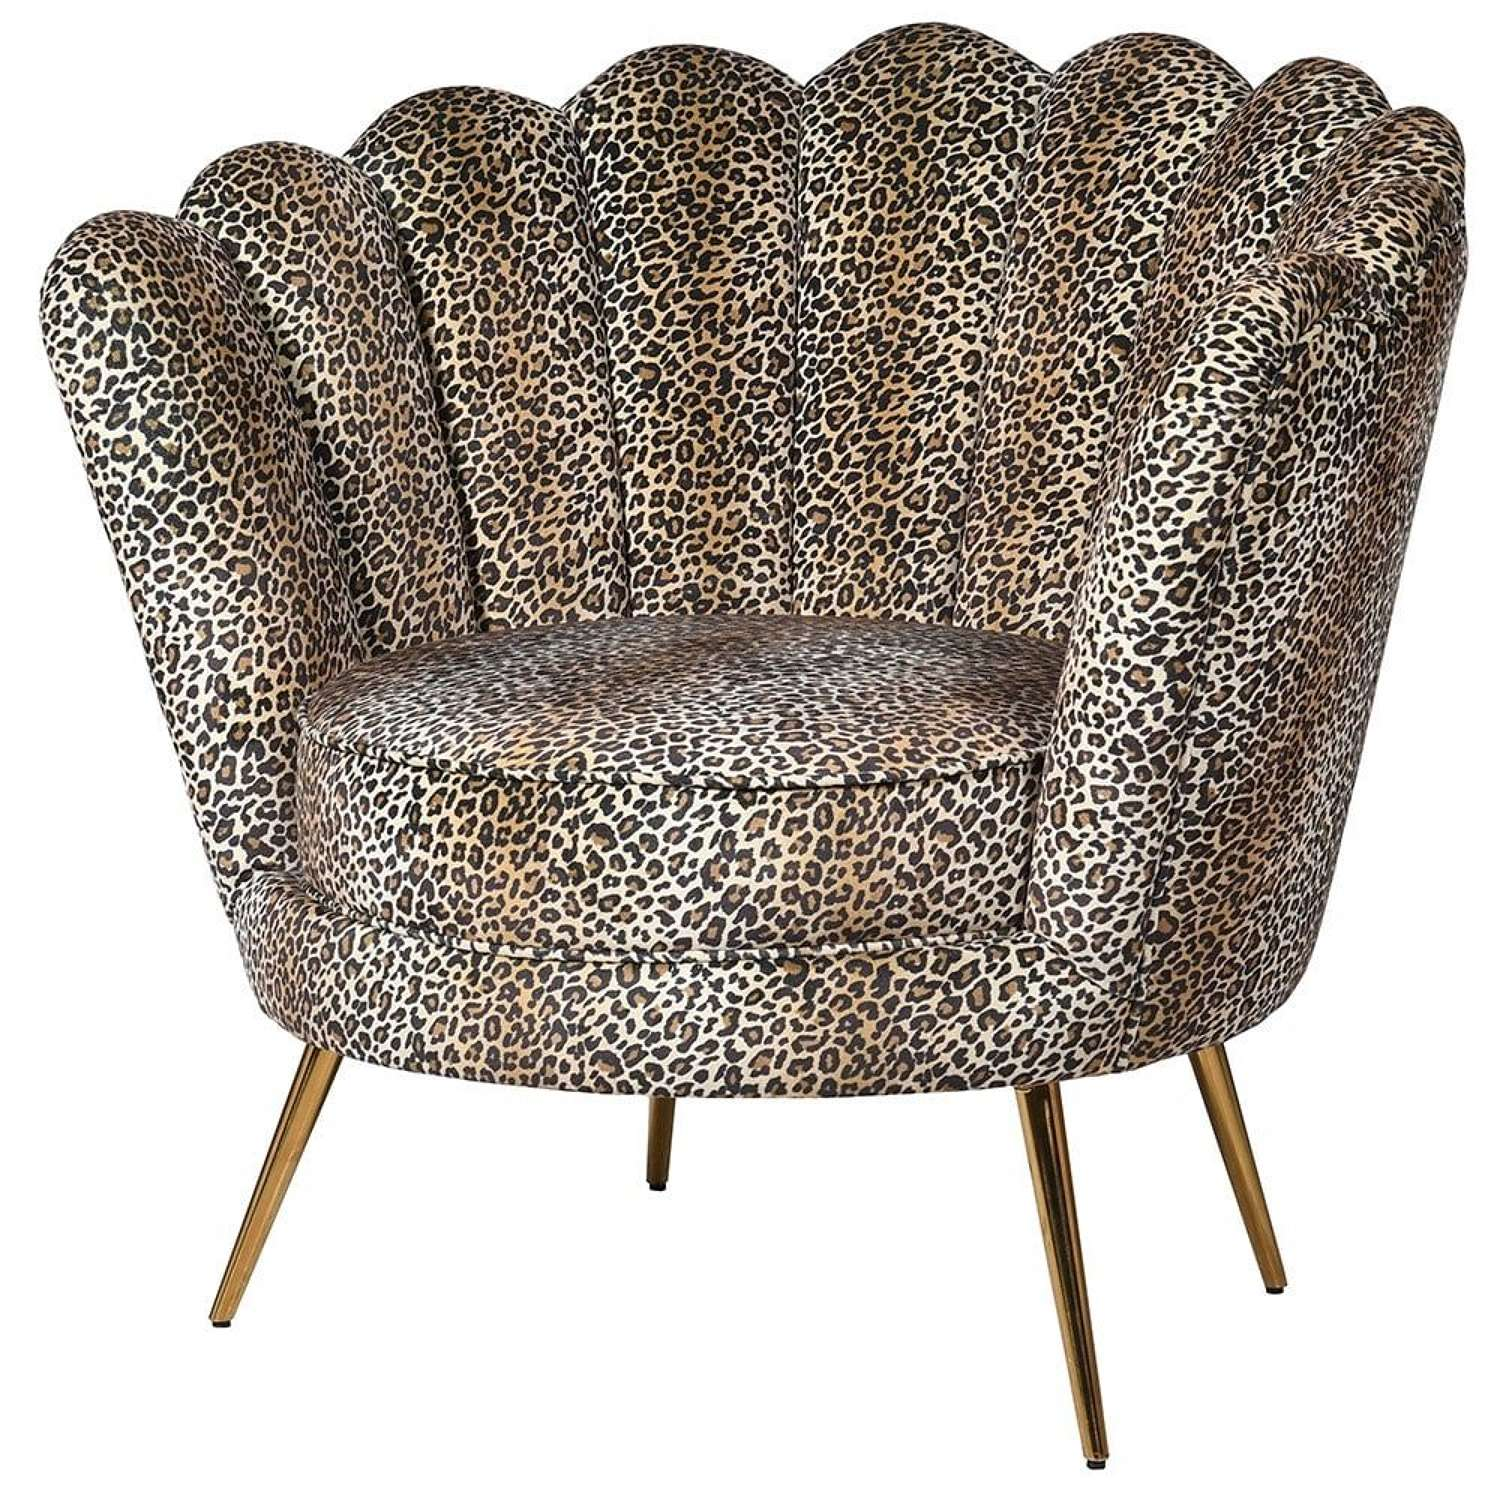 Sassy leopard print cocktail chair